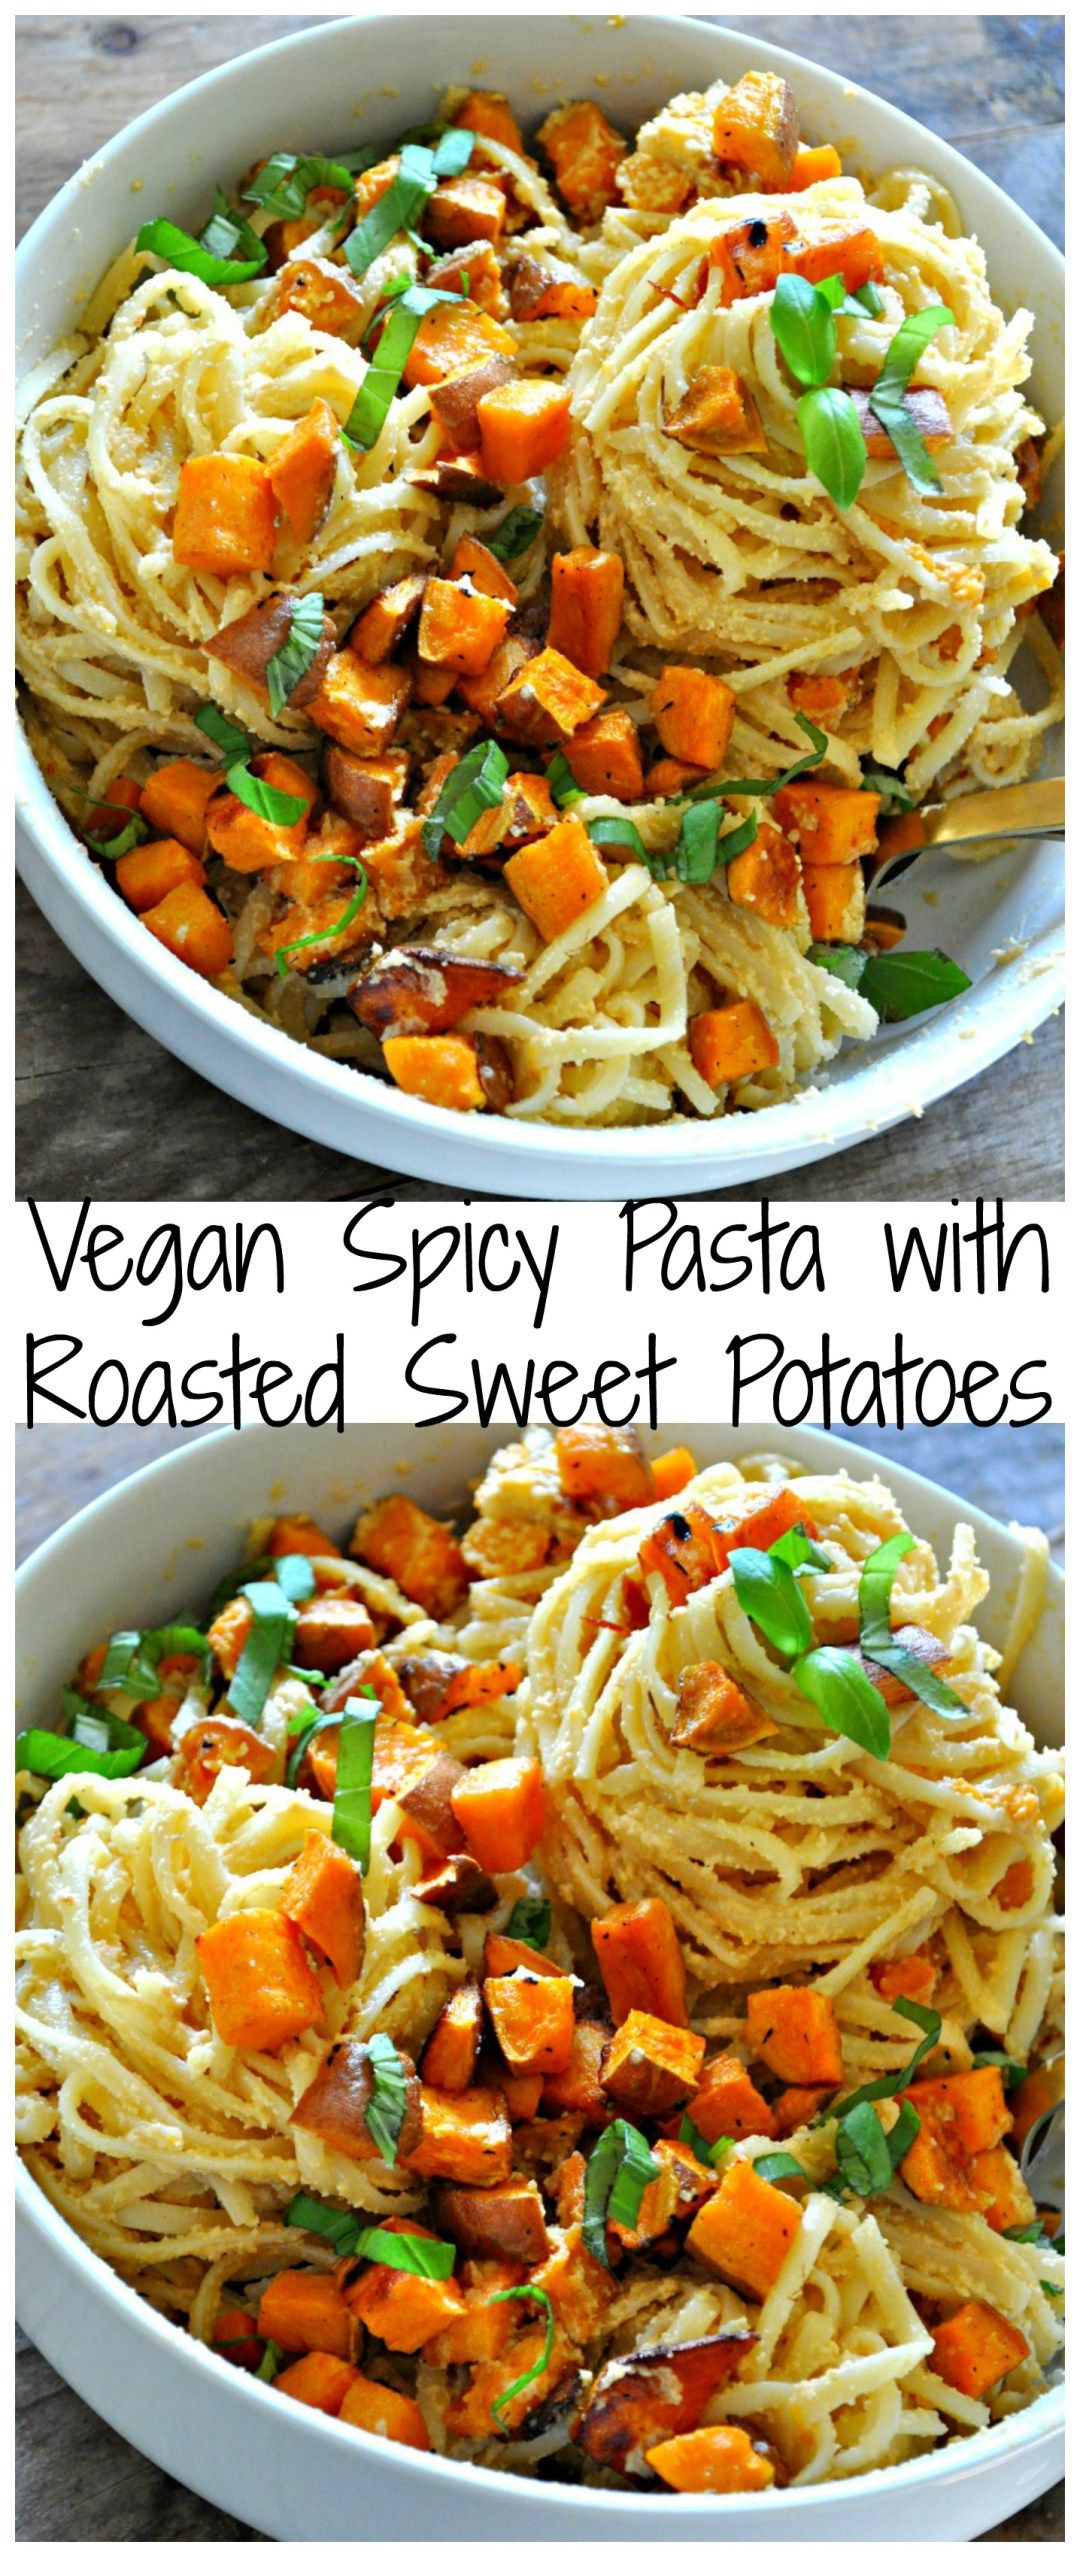 Vegan Spicy Pasta With Roasted Sweet Potatoes